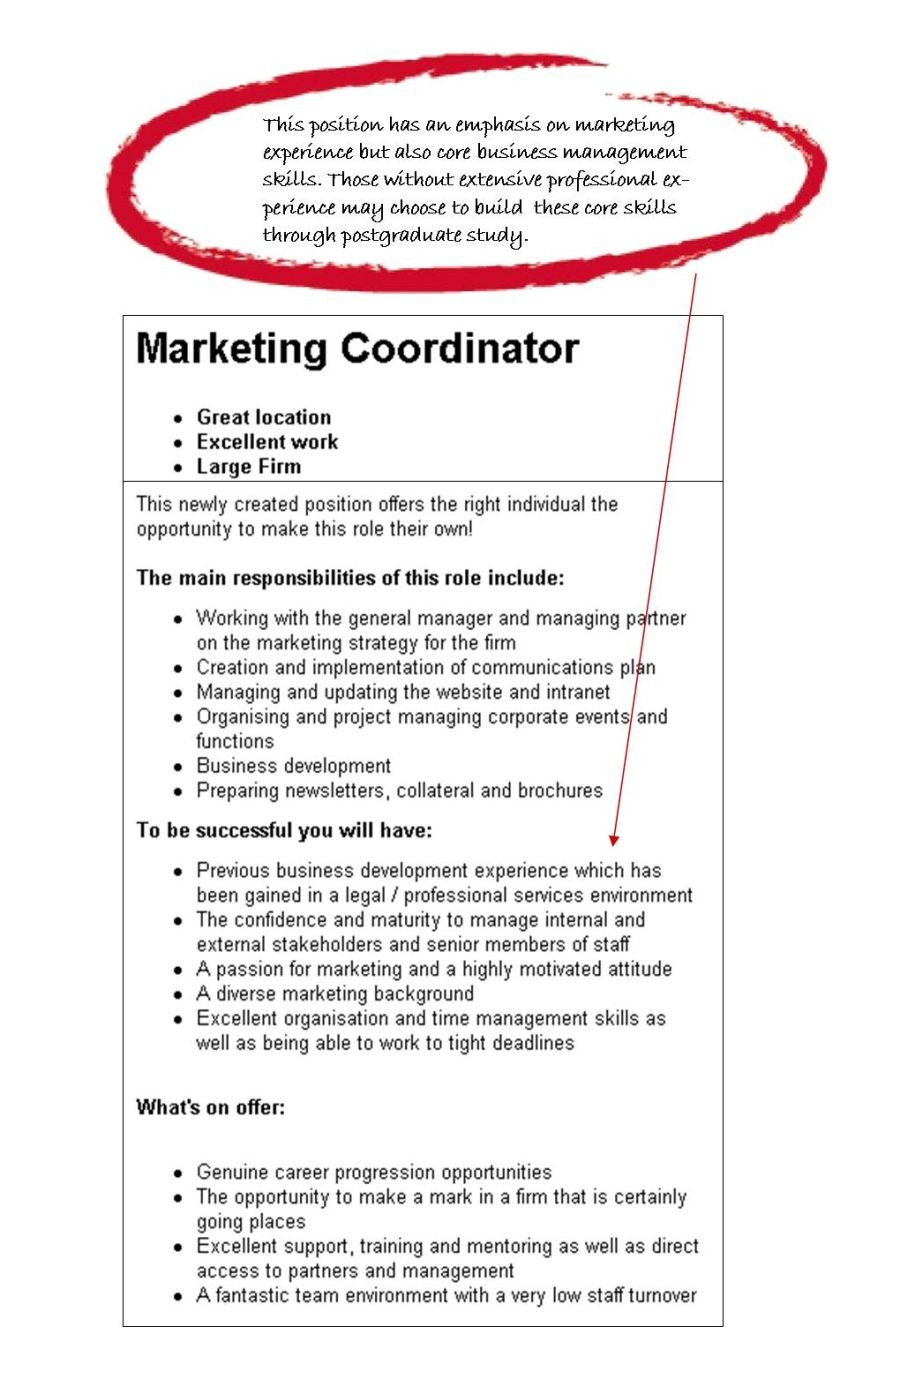 resume objective examples cv professional statement hobbies travelling fulfillment Resume Professional Resume Objective Statement Examples